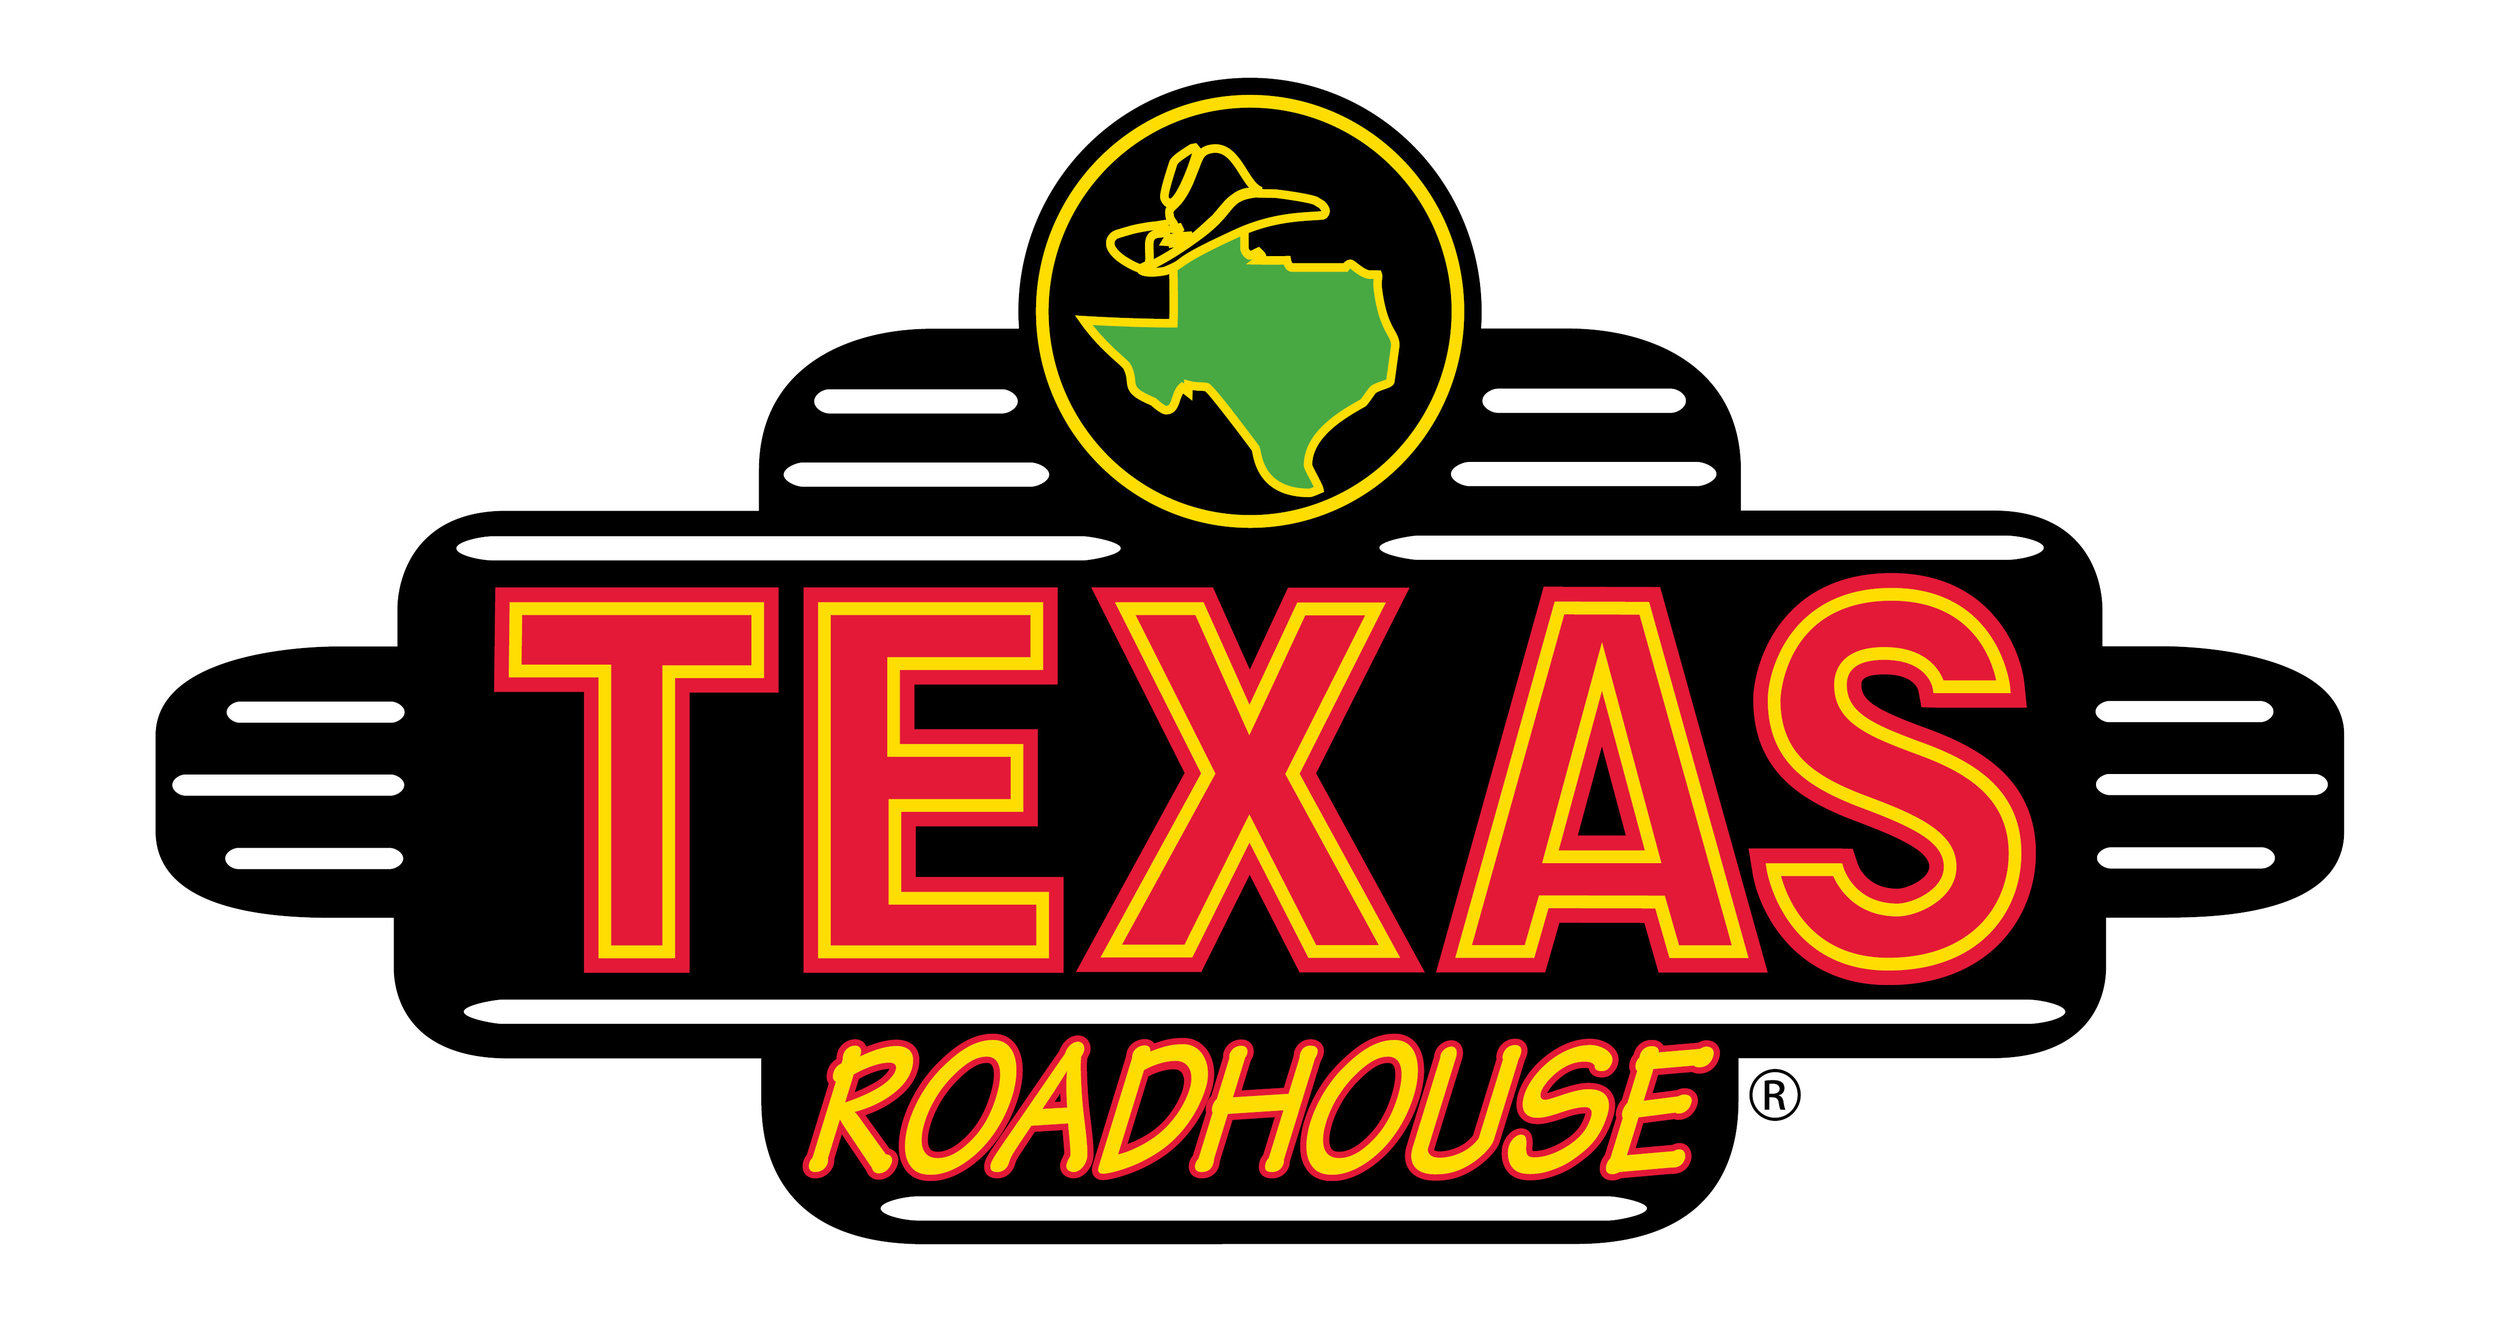 Texas Roadhouse Logo - Web.jpg